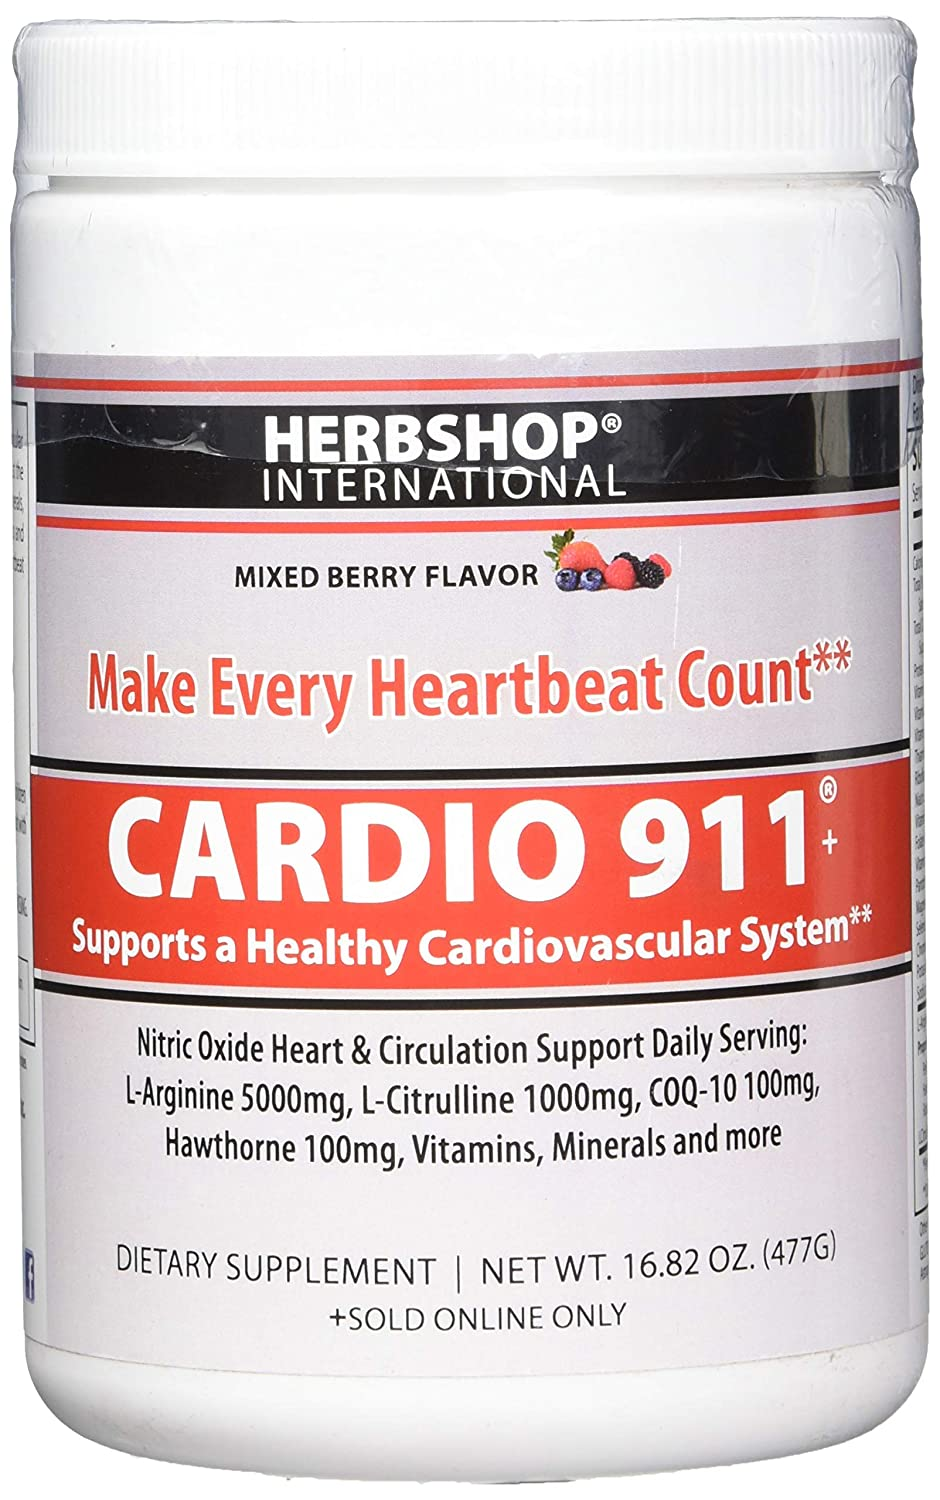 New Berry Flavor Cardio 911 – Heart Health – L Arginine 5000mg – L Citrulline 1000mg, 16.82 Ounce Powder, 30 Day Supply